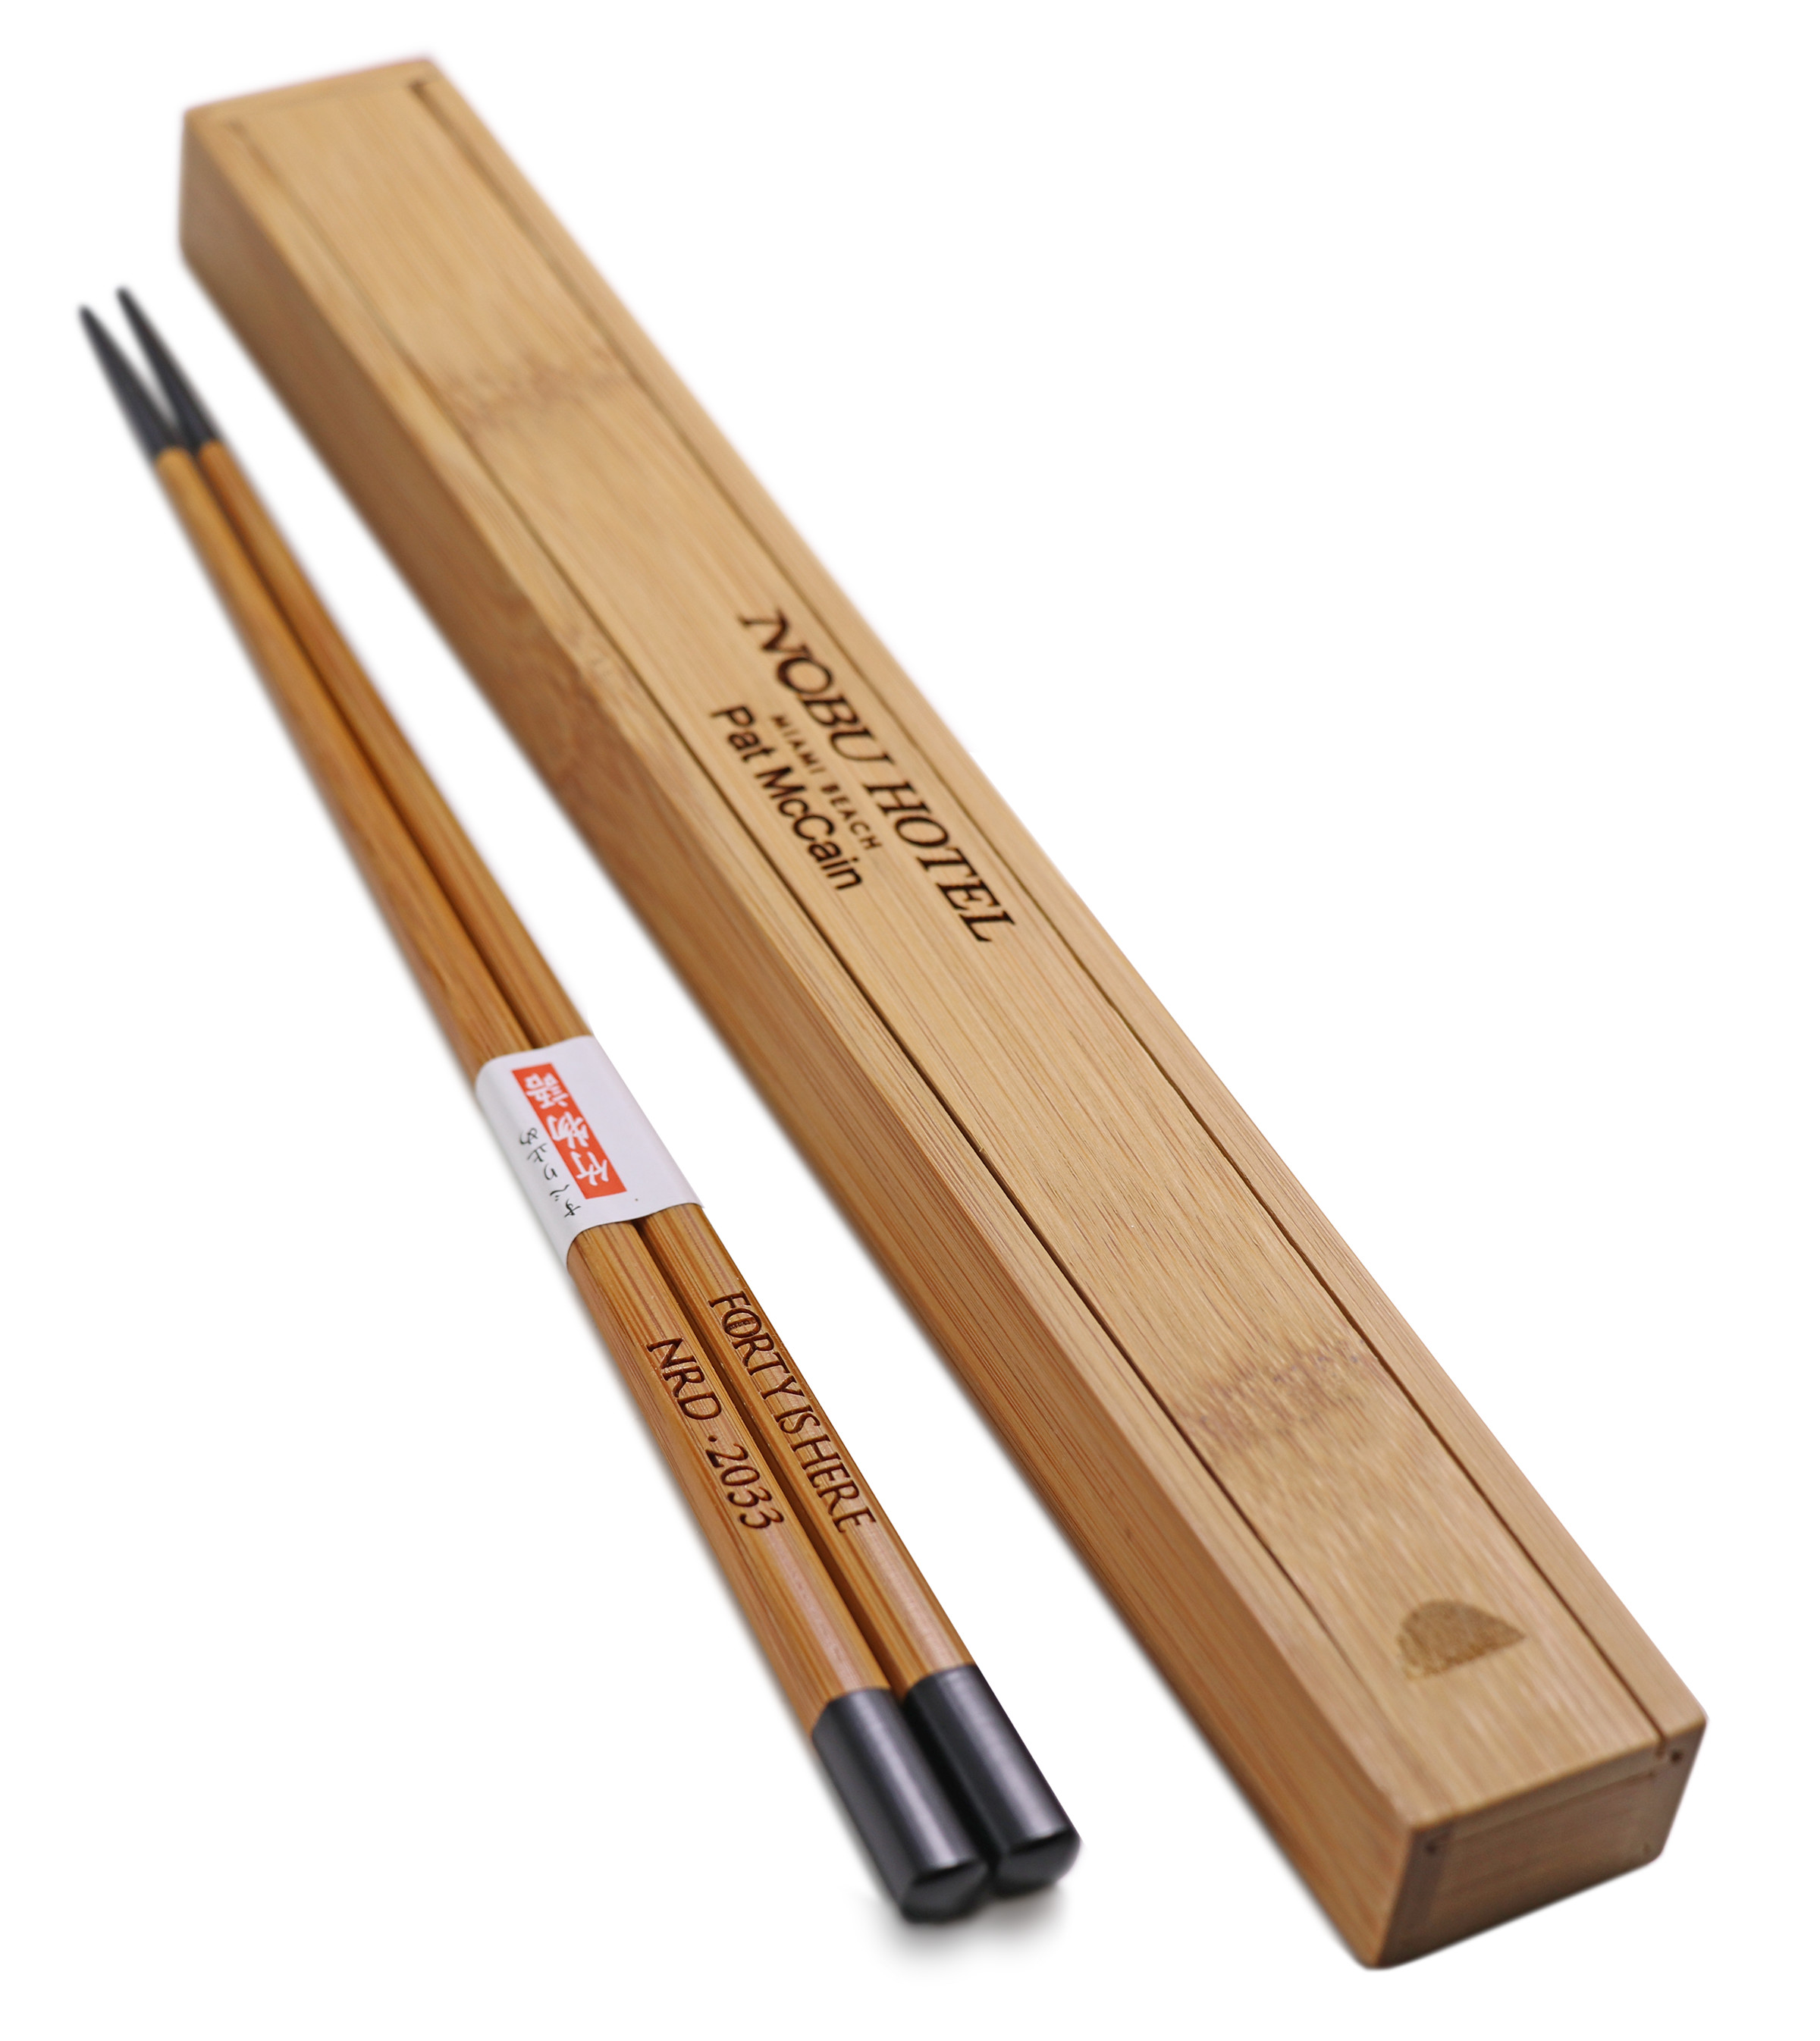 Personalized Black Bamboo Chinese Wood Chopsticks